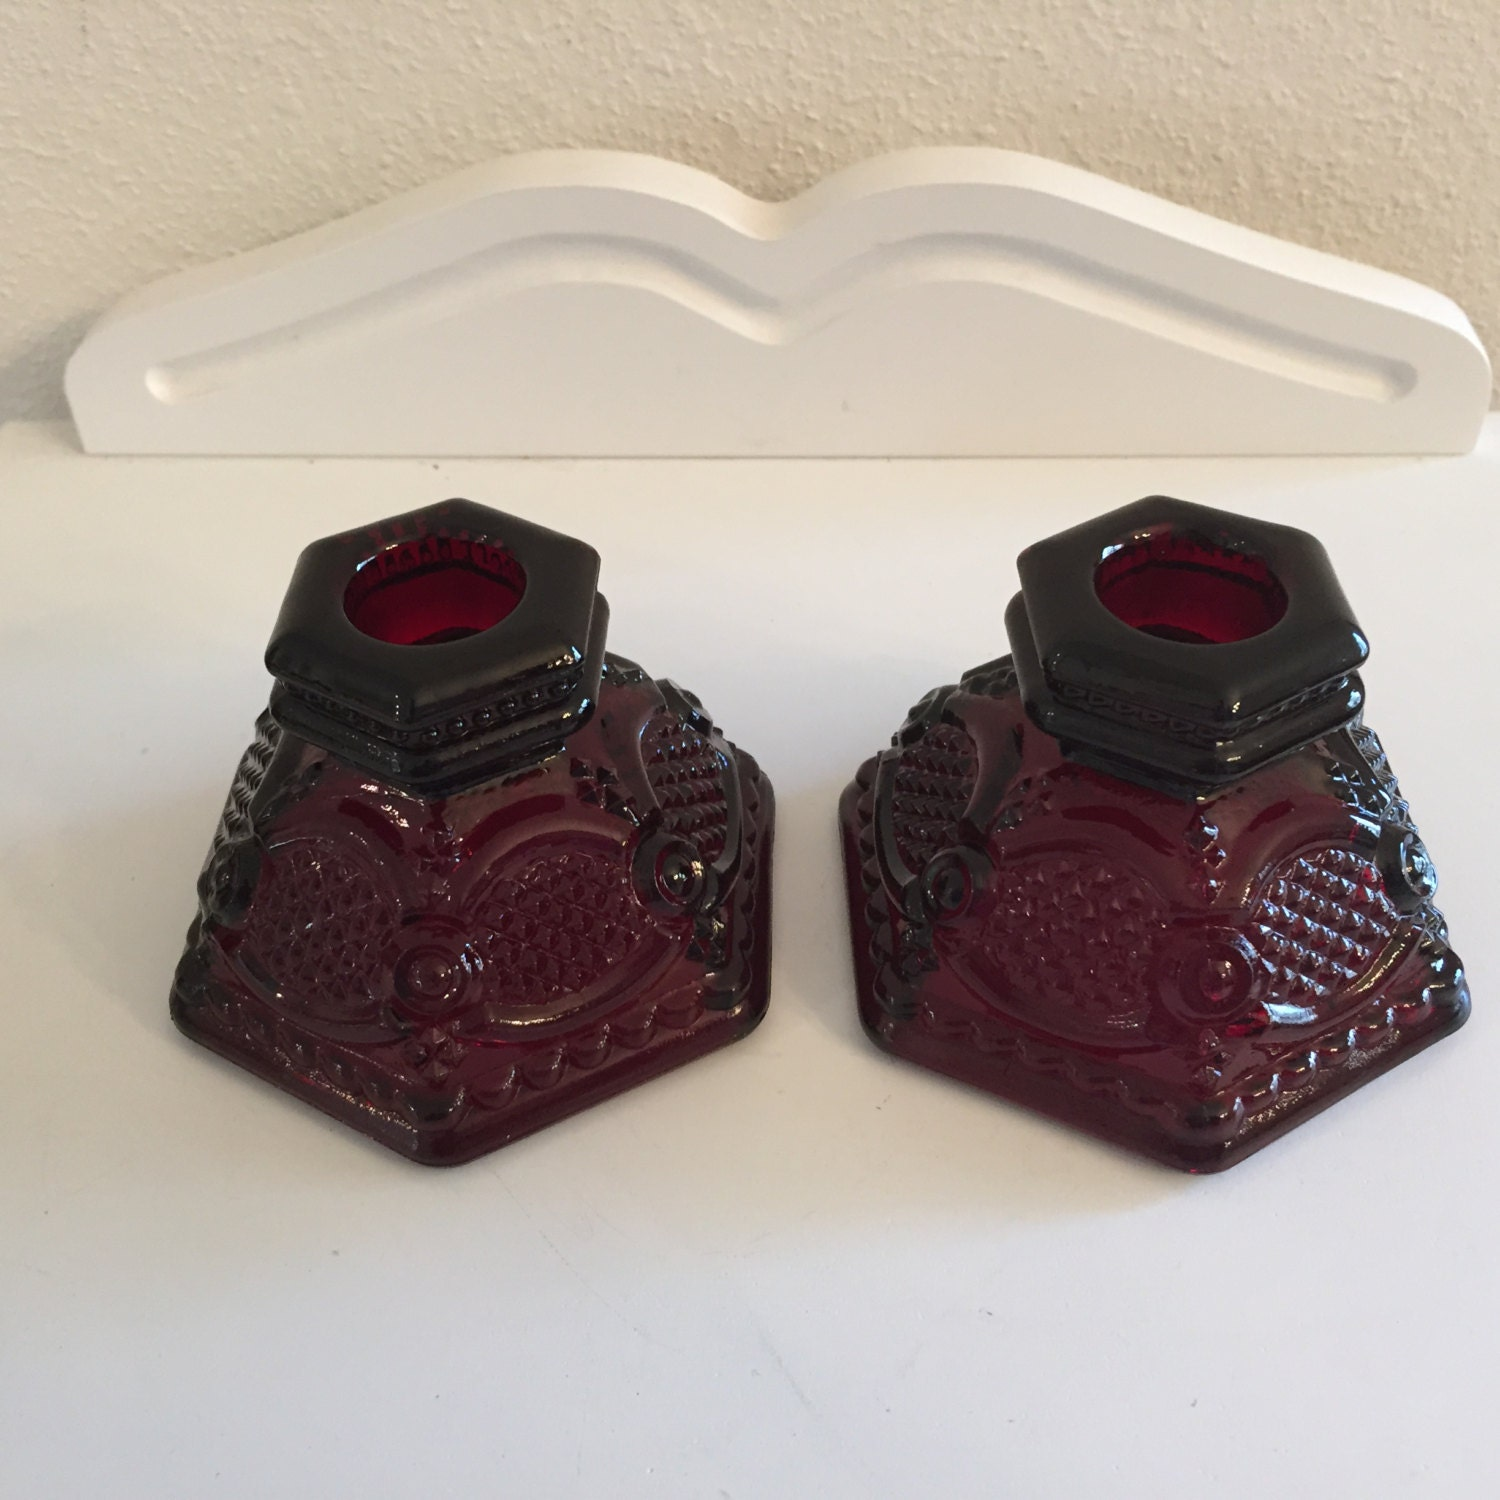 Pair Of Avon 1876 Cape Cod Collection Ruby Red Candleholders